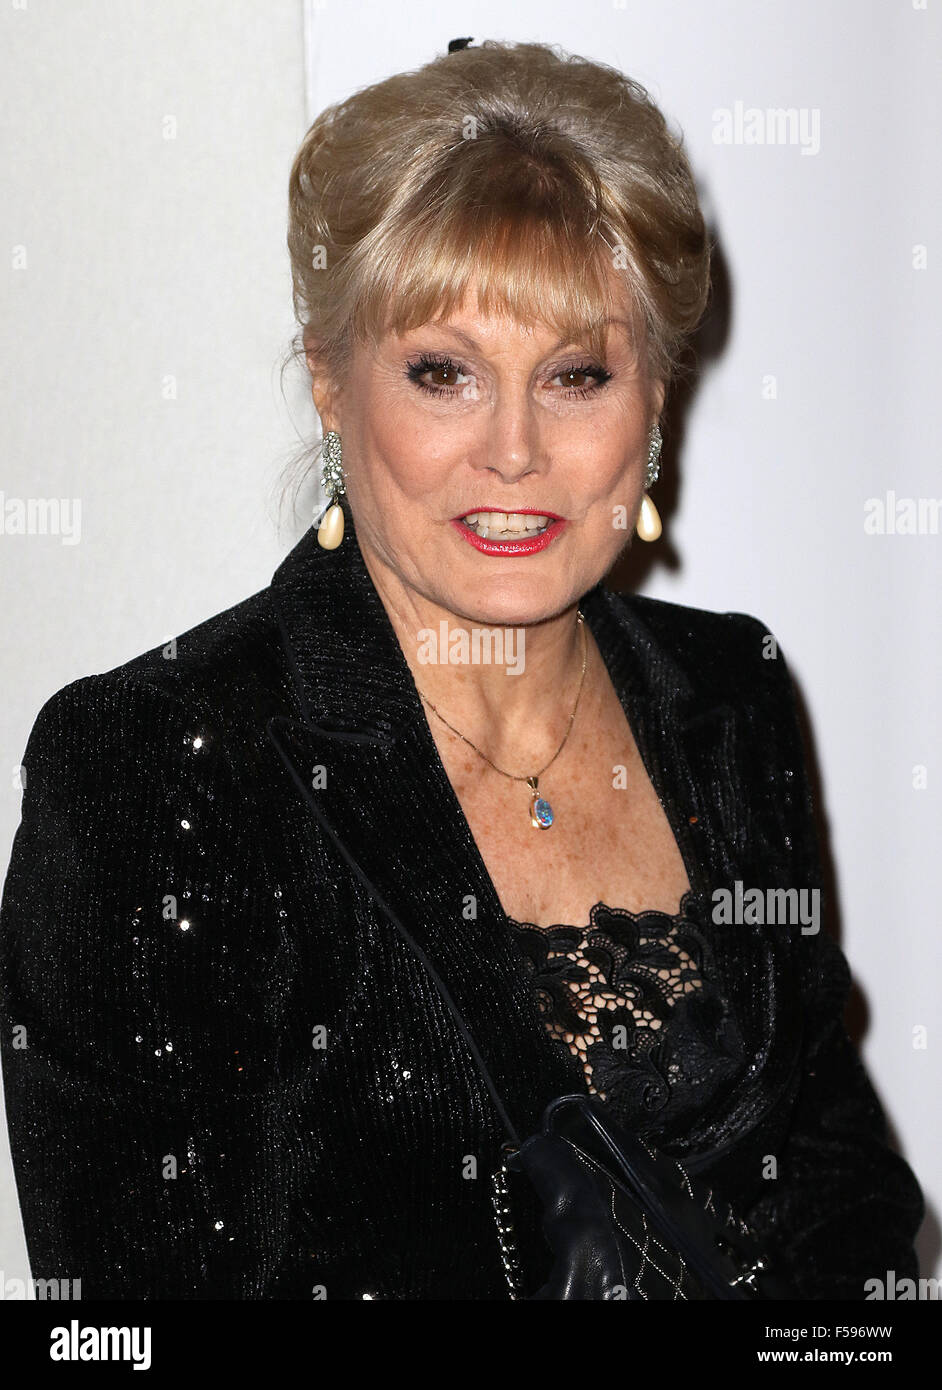 October 21, 2015 - Angela Rippon attending the 'Daily Mirror & RSPCA Animal Hero Awards 2015' at 8 Northumberland - Stock Image